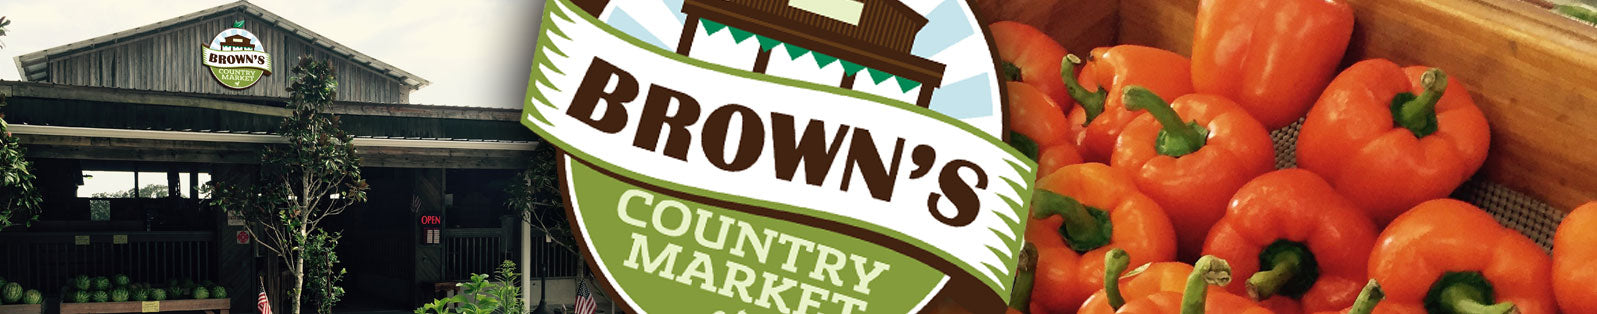 Brown's Country Market